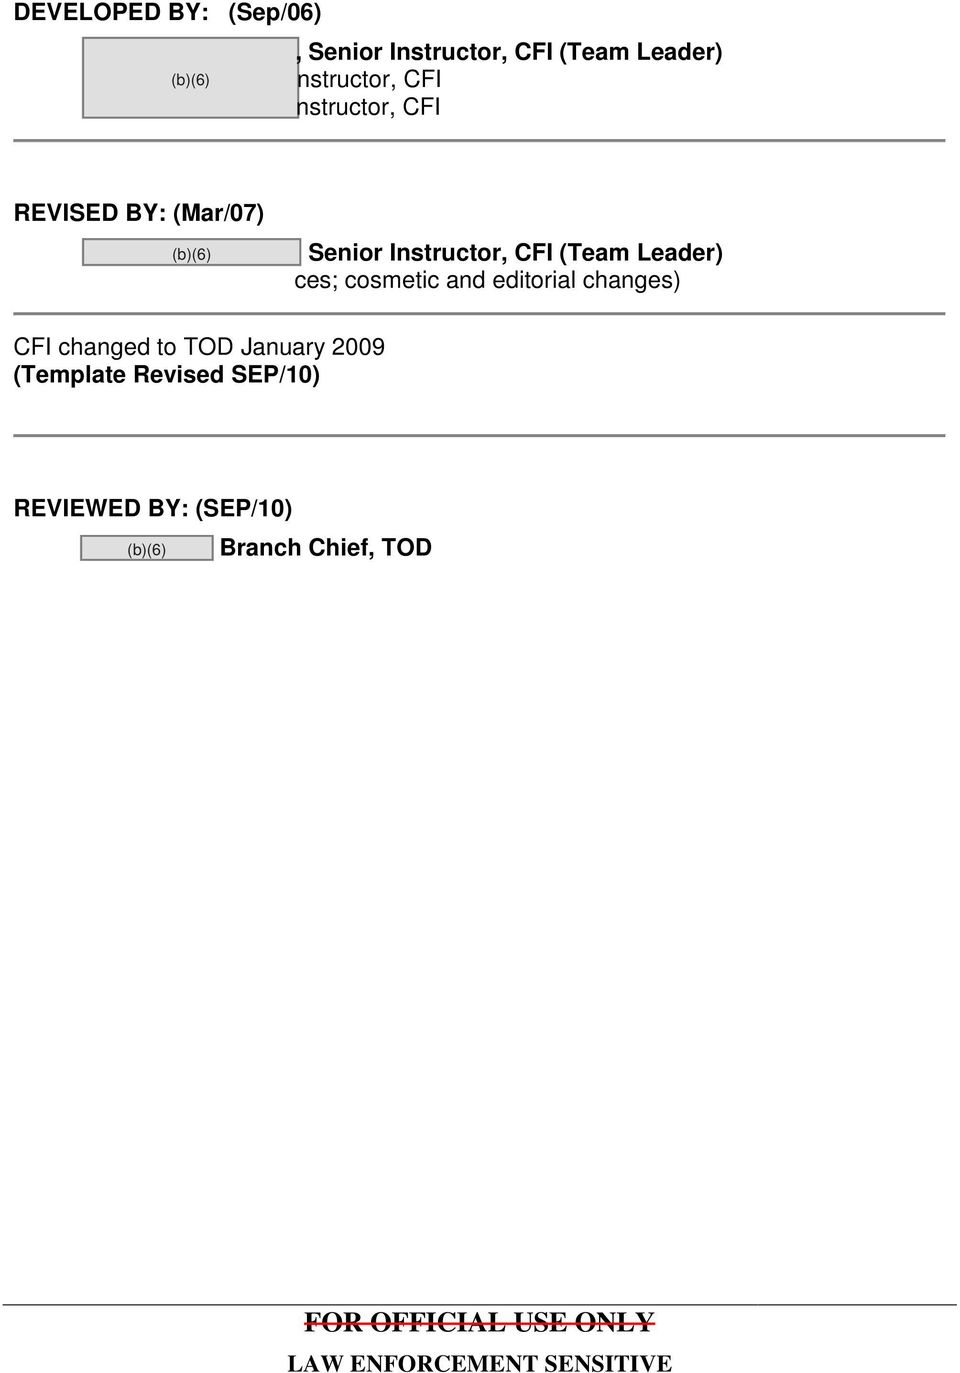 TECHNICAL OPERATIONS DIVISION LESSON PLAN - PDF